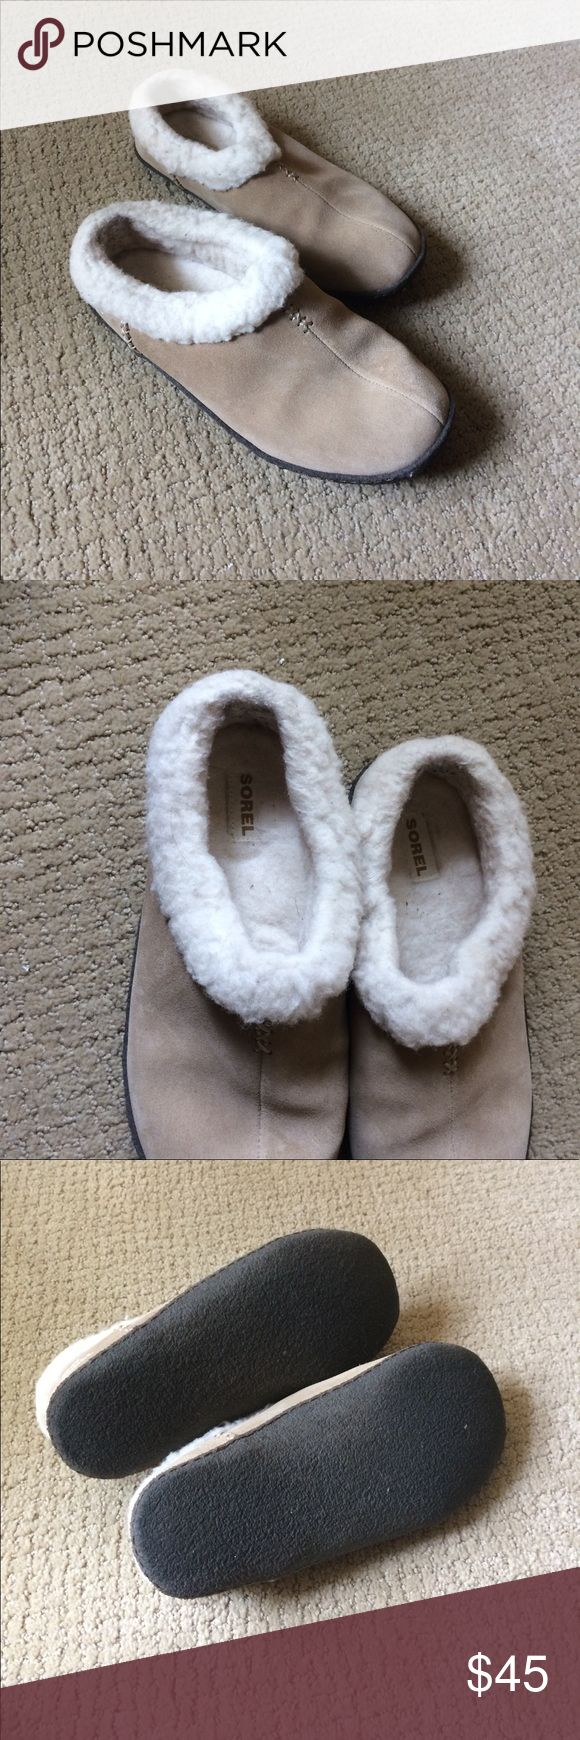 Sorel slippers🌞 NO trades ❌ Reasonable offers considered through the 'offer' option only! Bundle & SAVE💲 Sorel Shoes Slippers